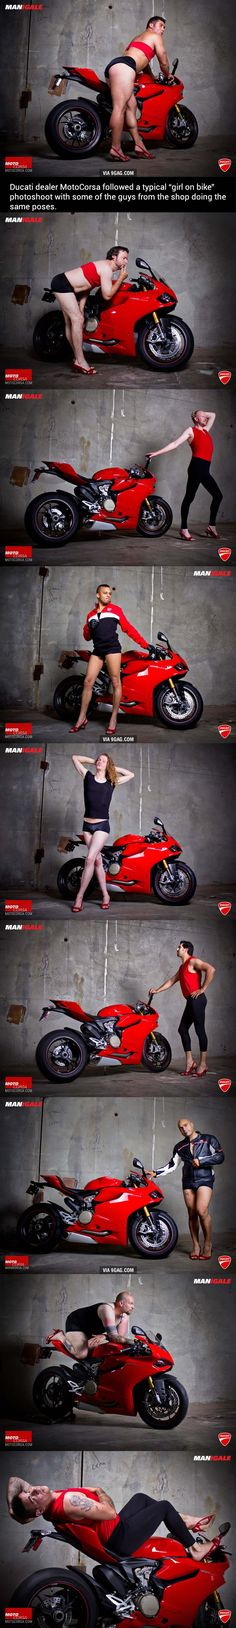 "Ducati dealer MotoCorsa took a typical ""girl on bike"" photoshoot and used some guys from the shop doing some of the same poses. Lol, Haha Funny, Funny Stuff, Freaking Hilarious, Chimamanda Ngozi Adichie, Bike Photoshoot, Typical Girl, Ex Machina, Dalian"